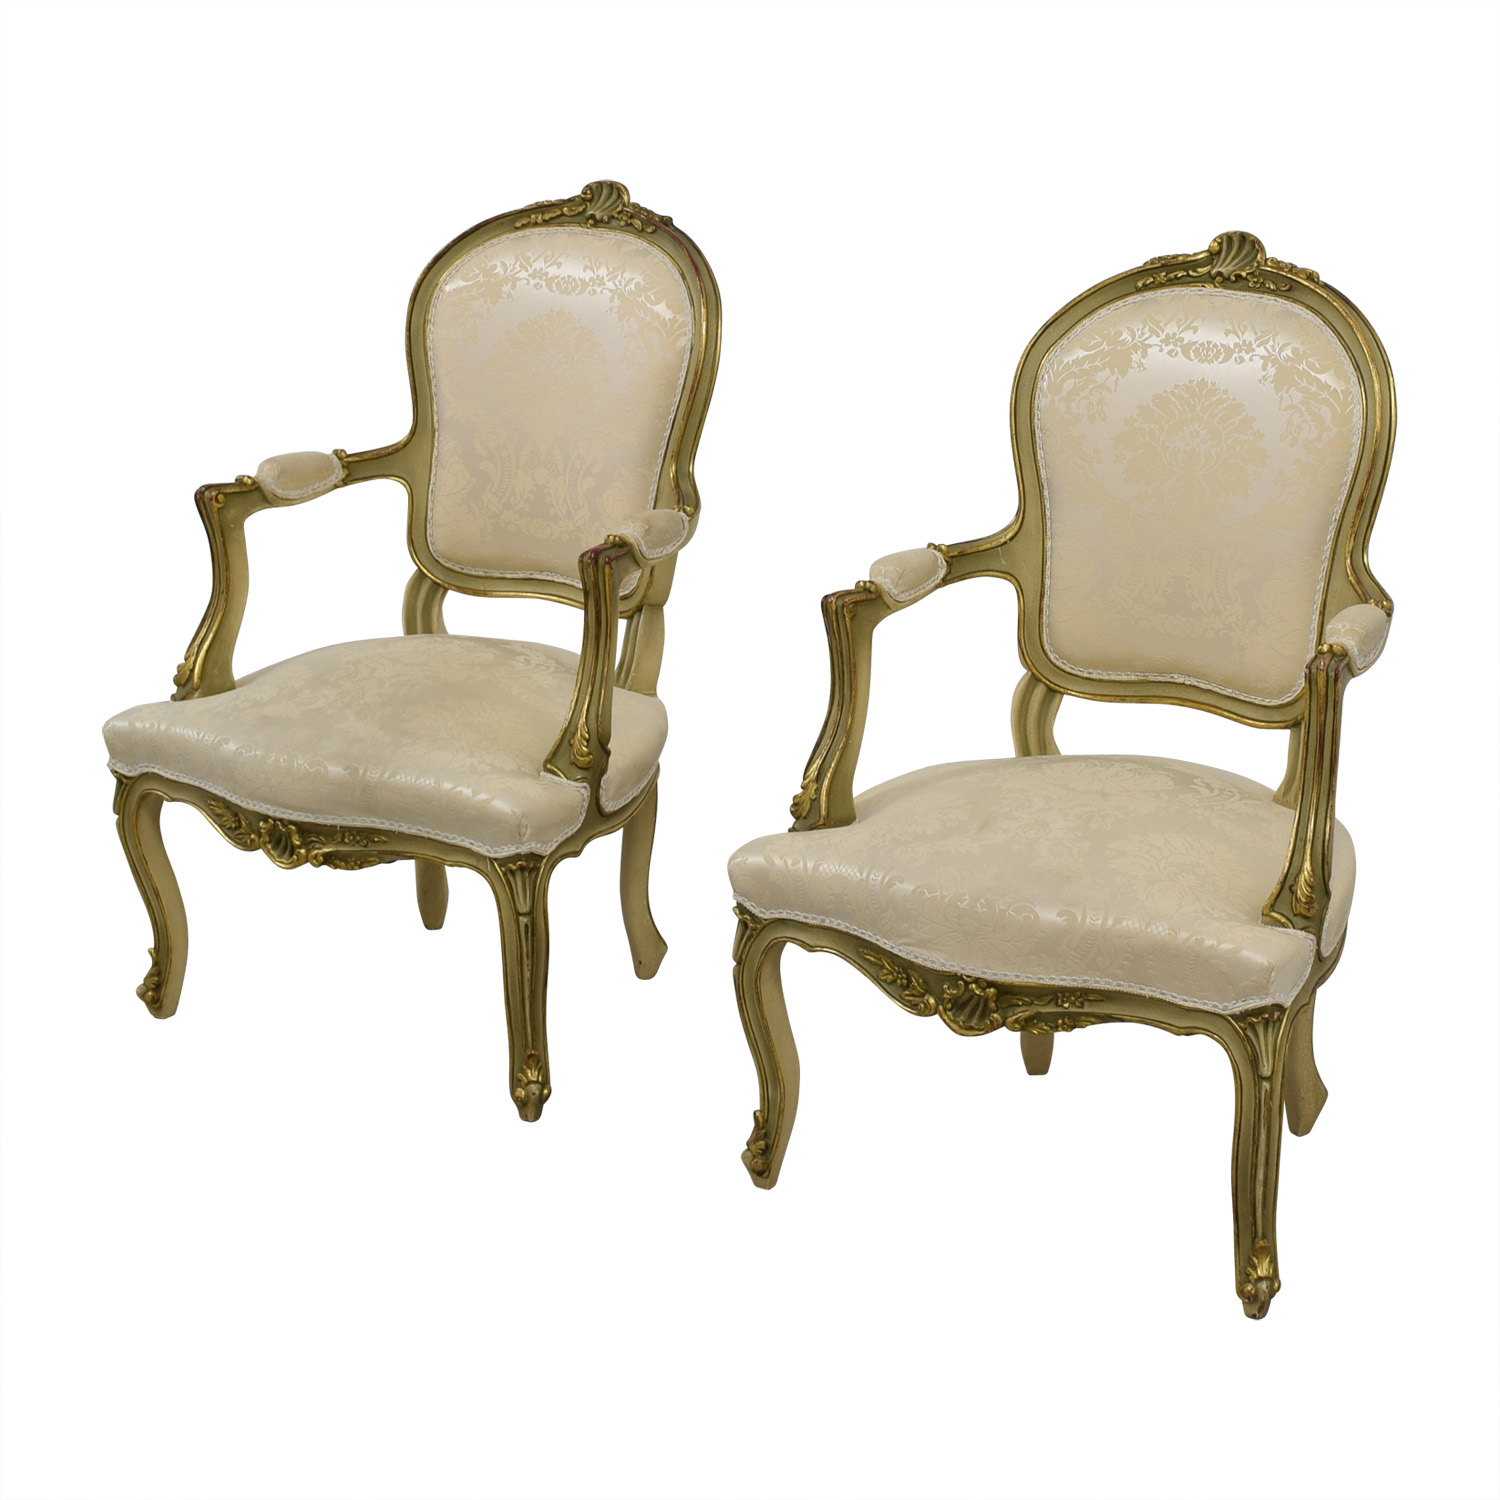 Antique White Jacquard Upholstered Gold Arm Chairs